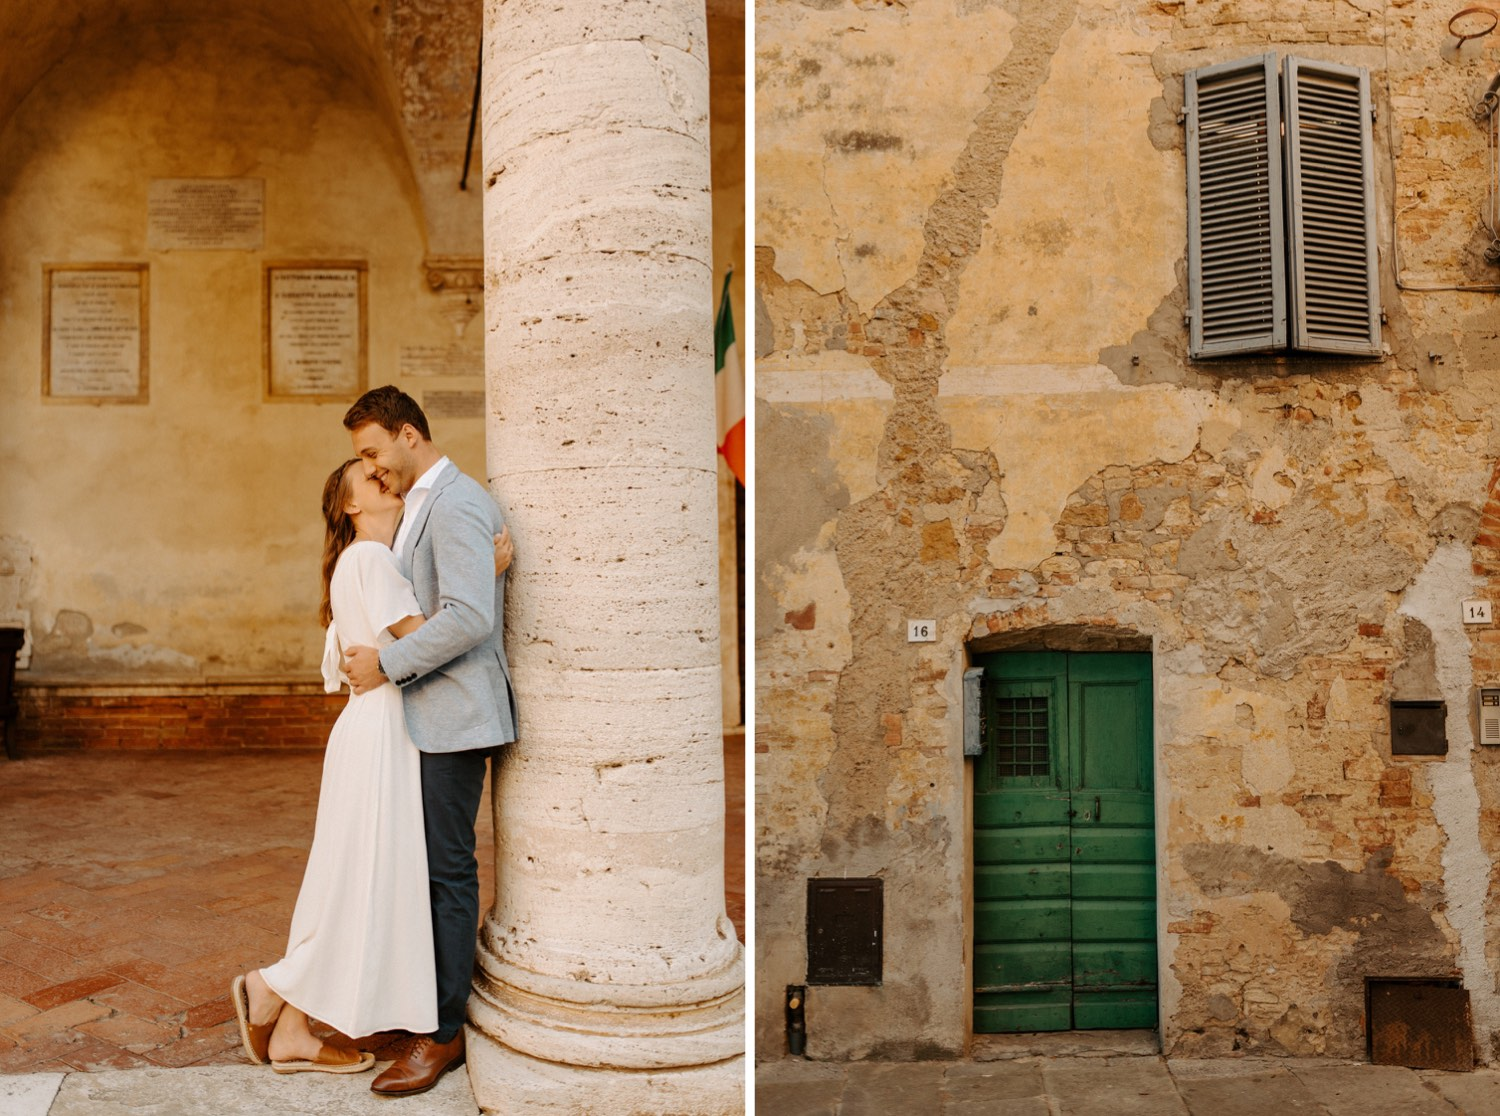 43_ali-dirk-pre-wedding-199_ali-dirk-pre-wedding-180_tuscany_siena_destination_wedding_italy_photography.jpg